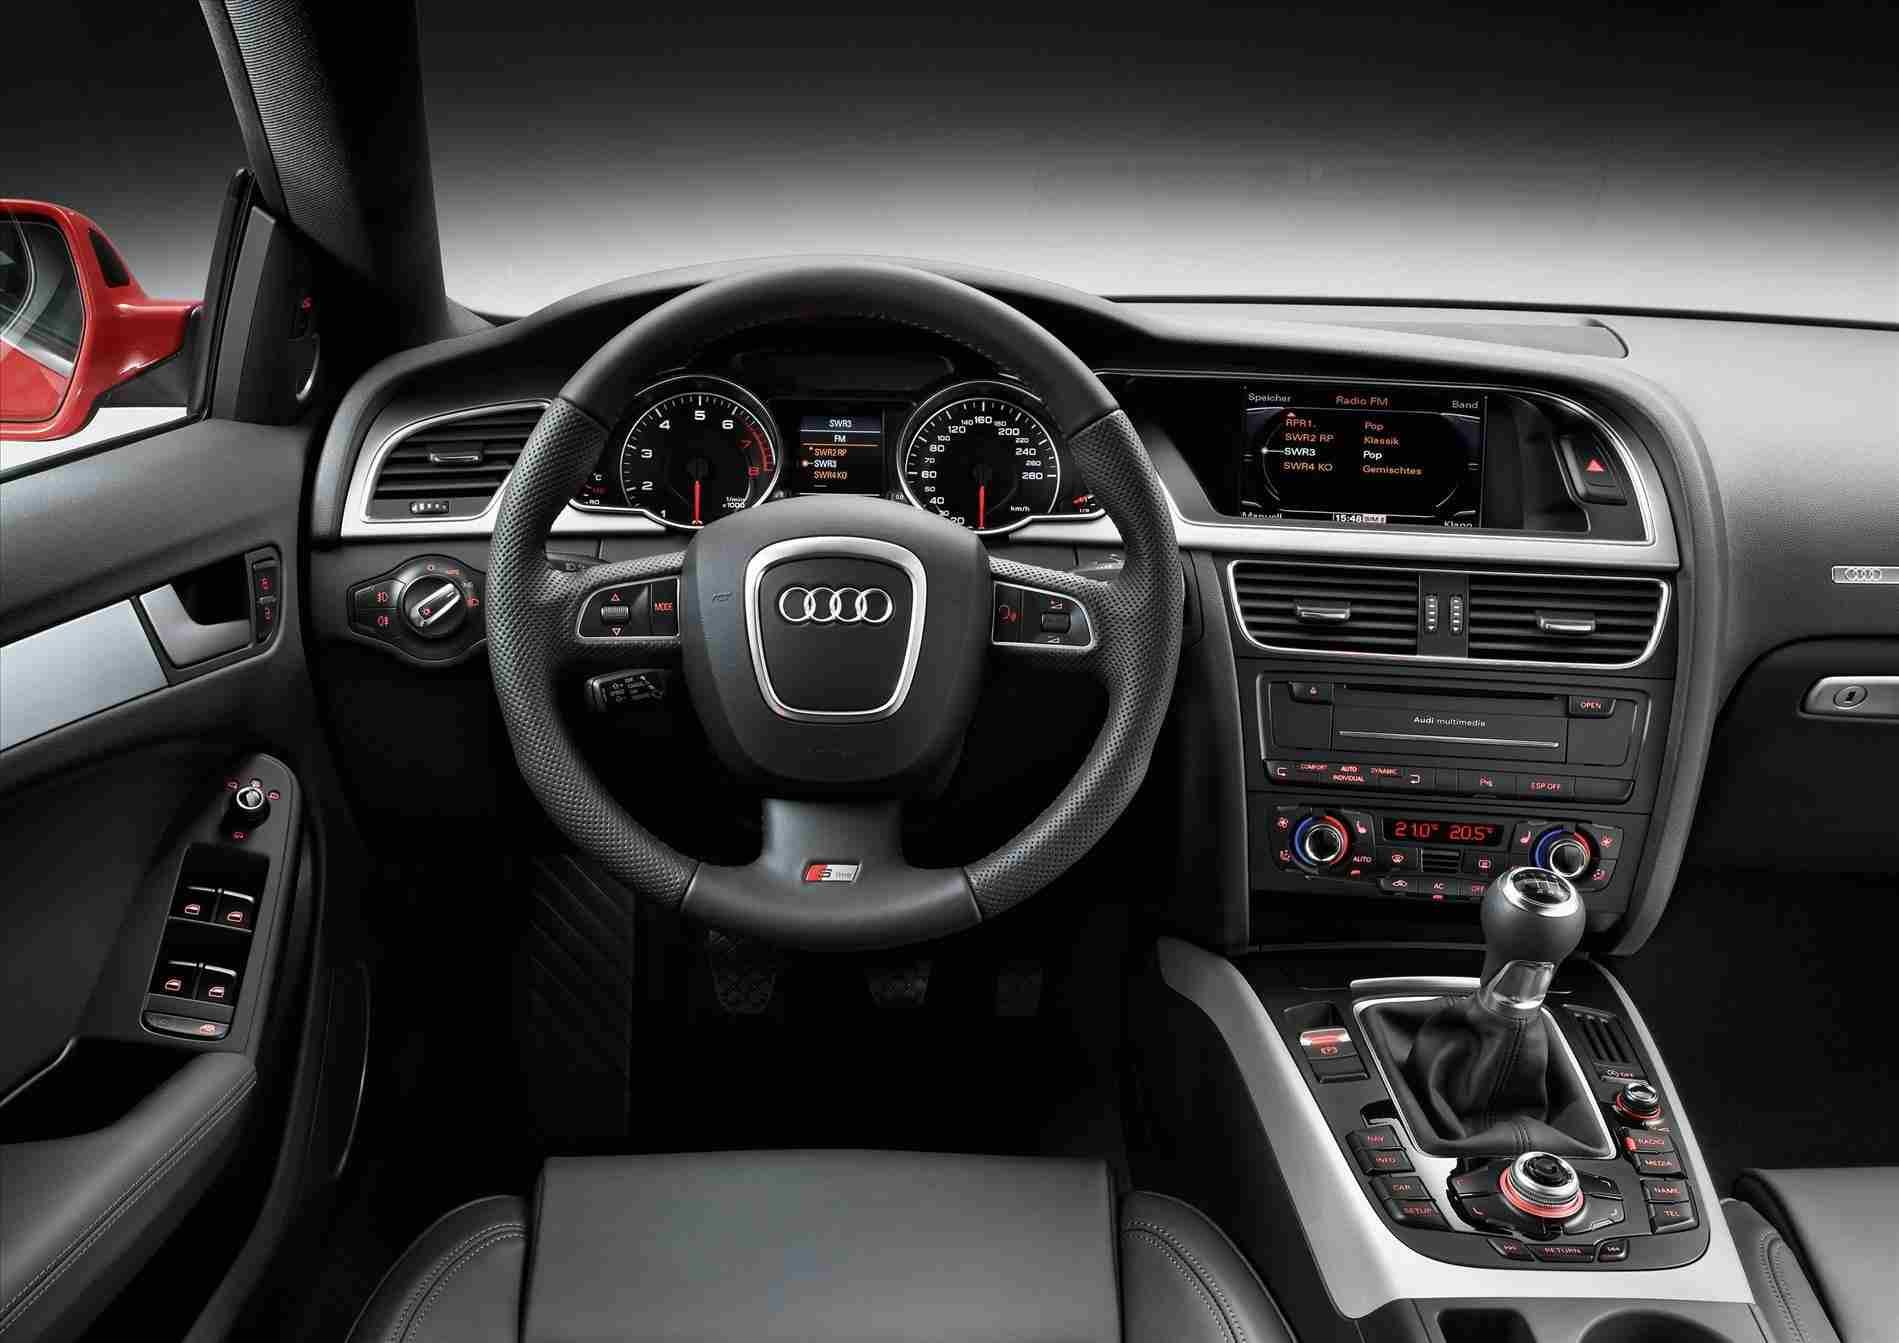 audi a5 interior 2010. Black Bedroom Furniture Sets. Home Design Ideas